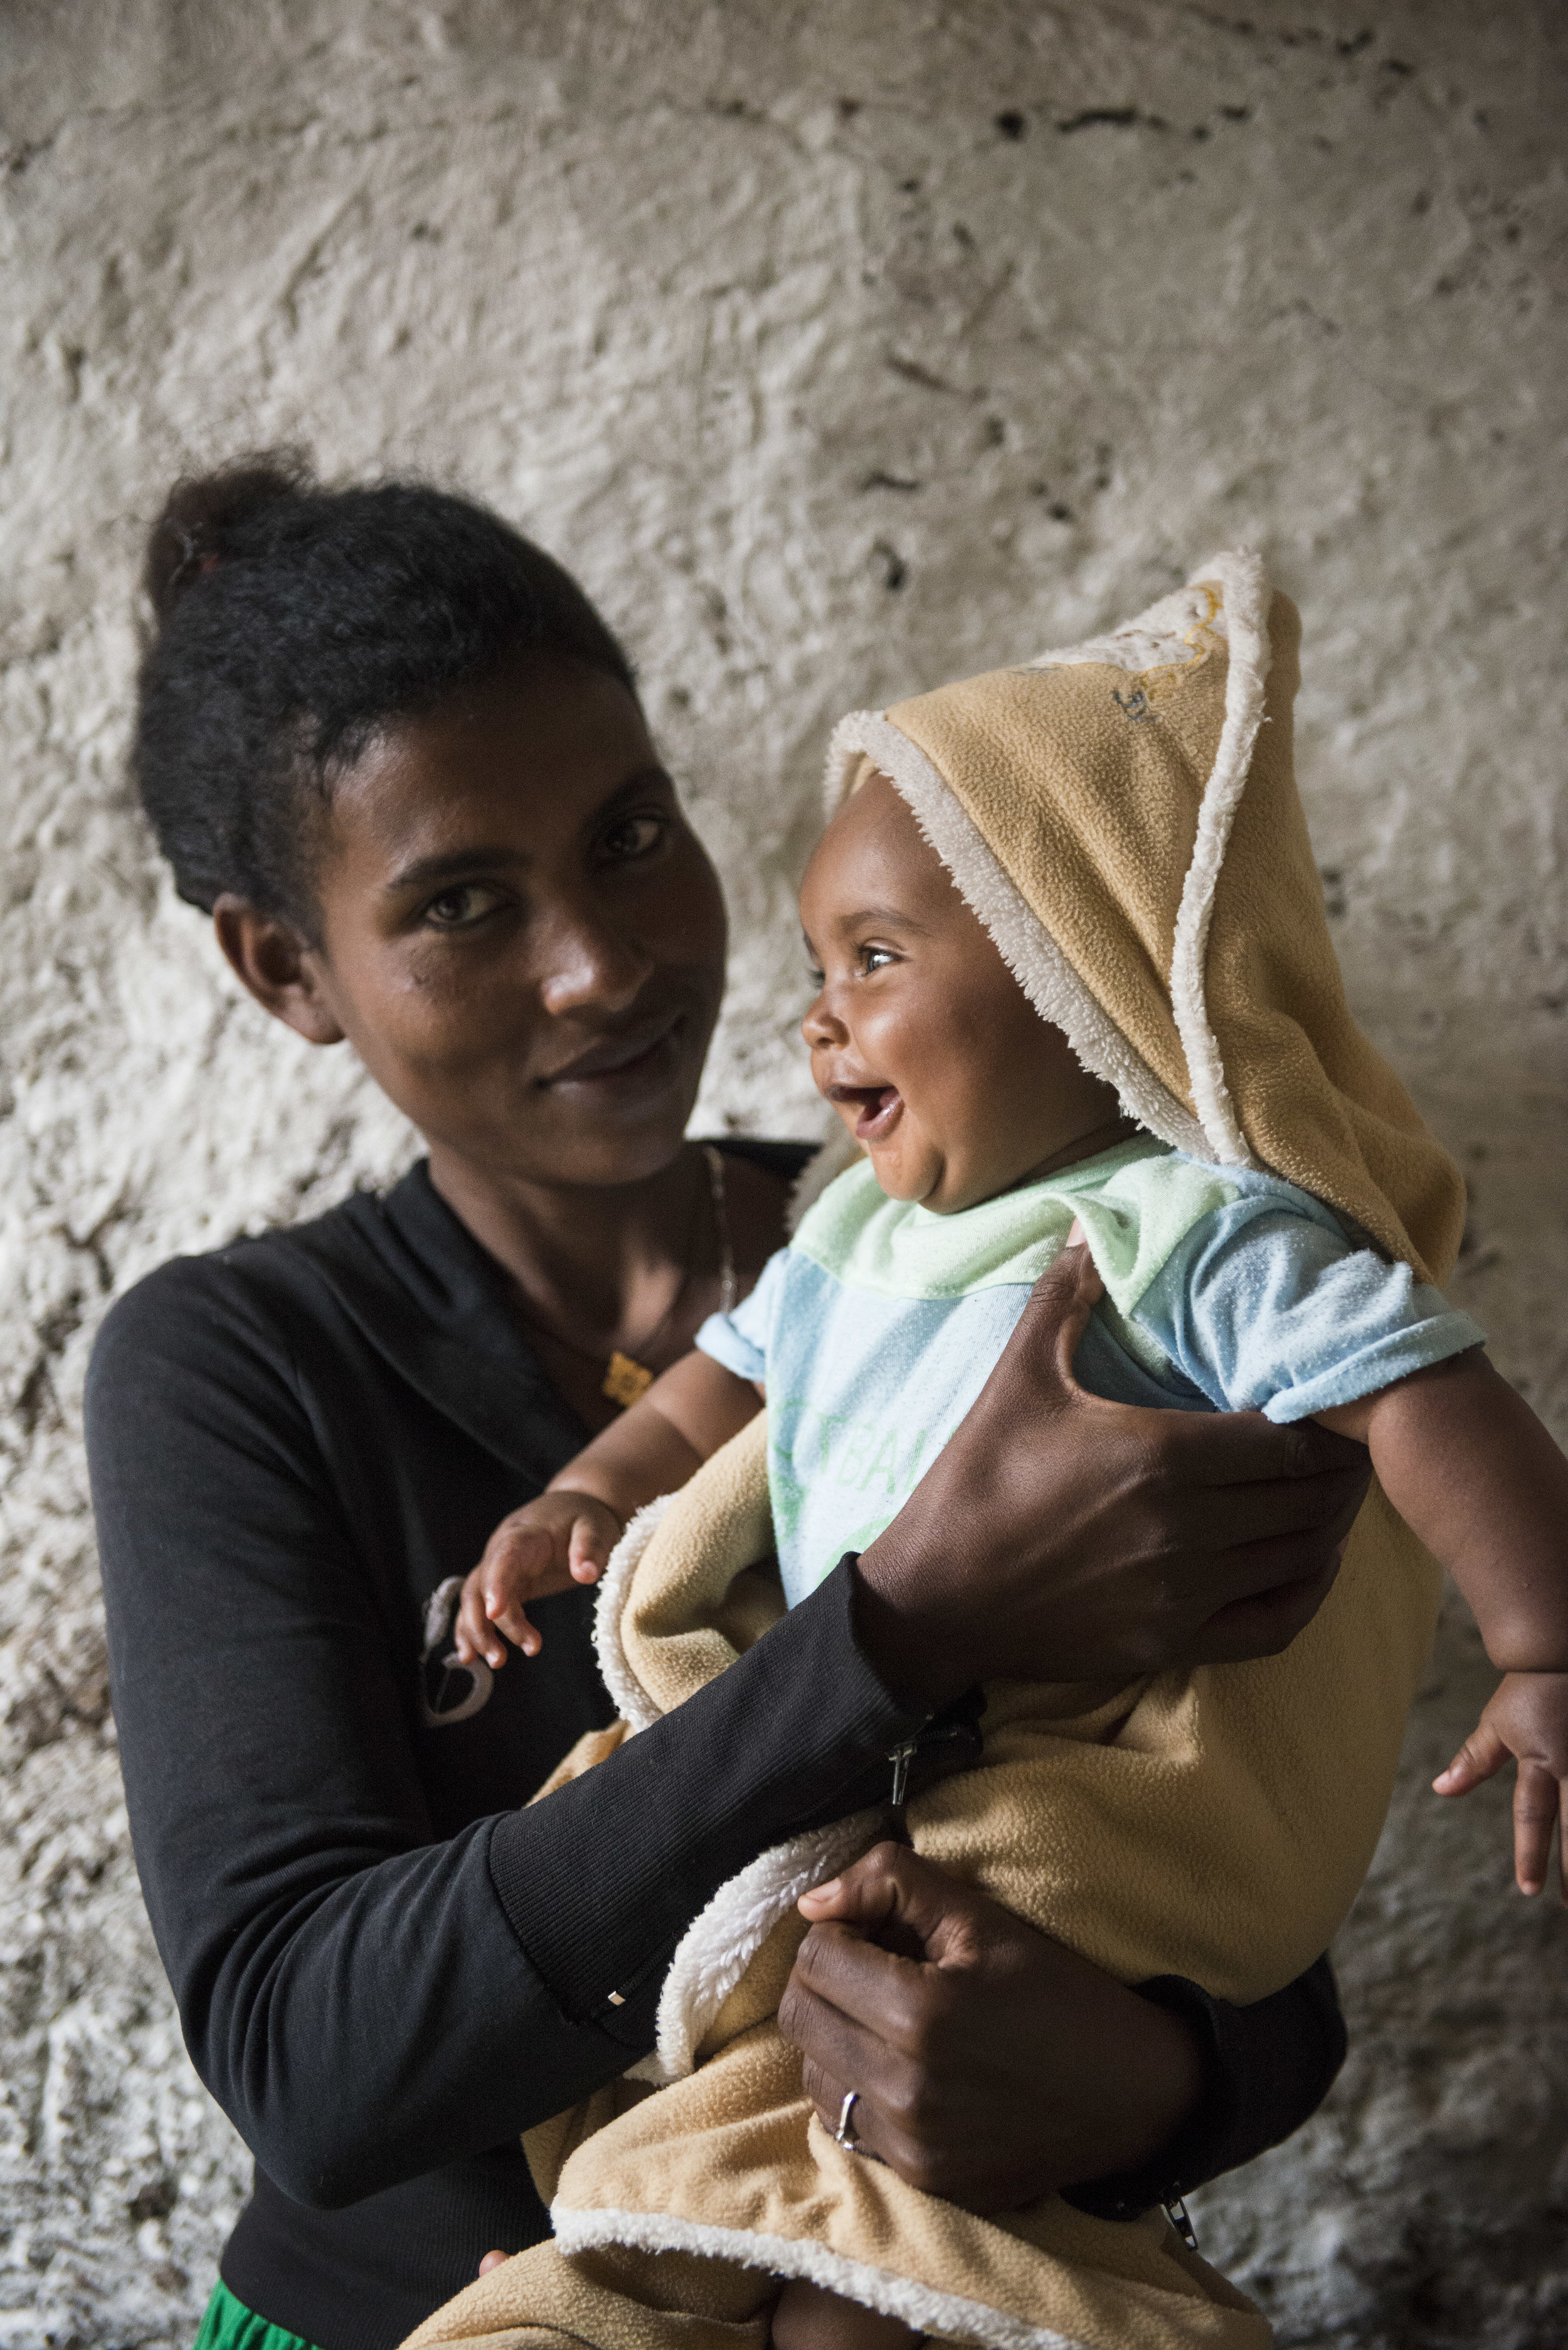 Child and Maternal Health project. Amhara Region, Ethiopia. 2017.